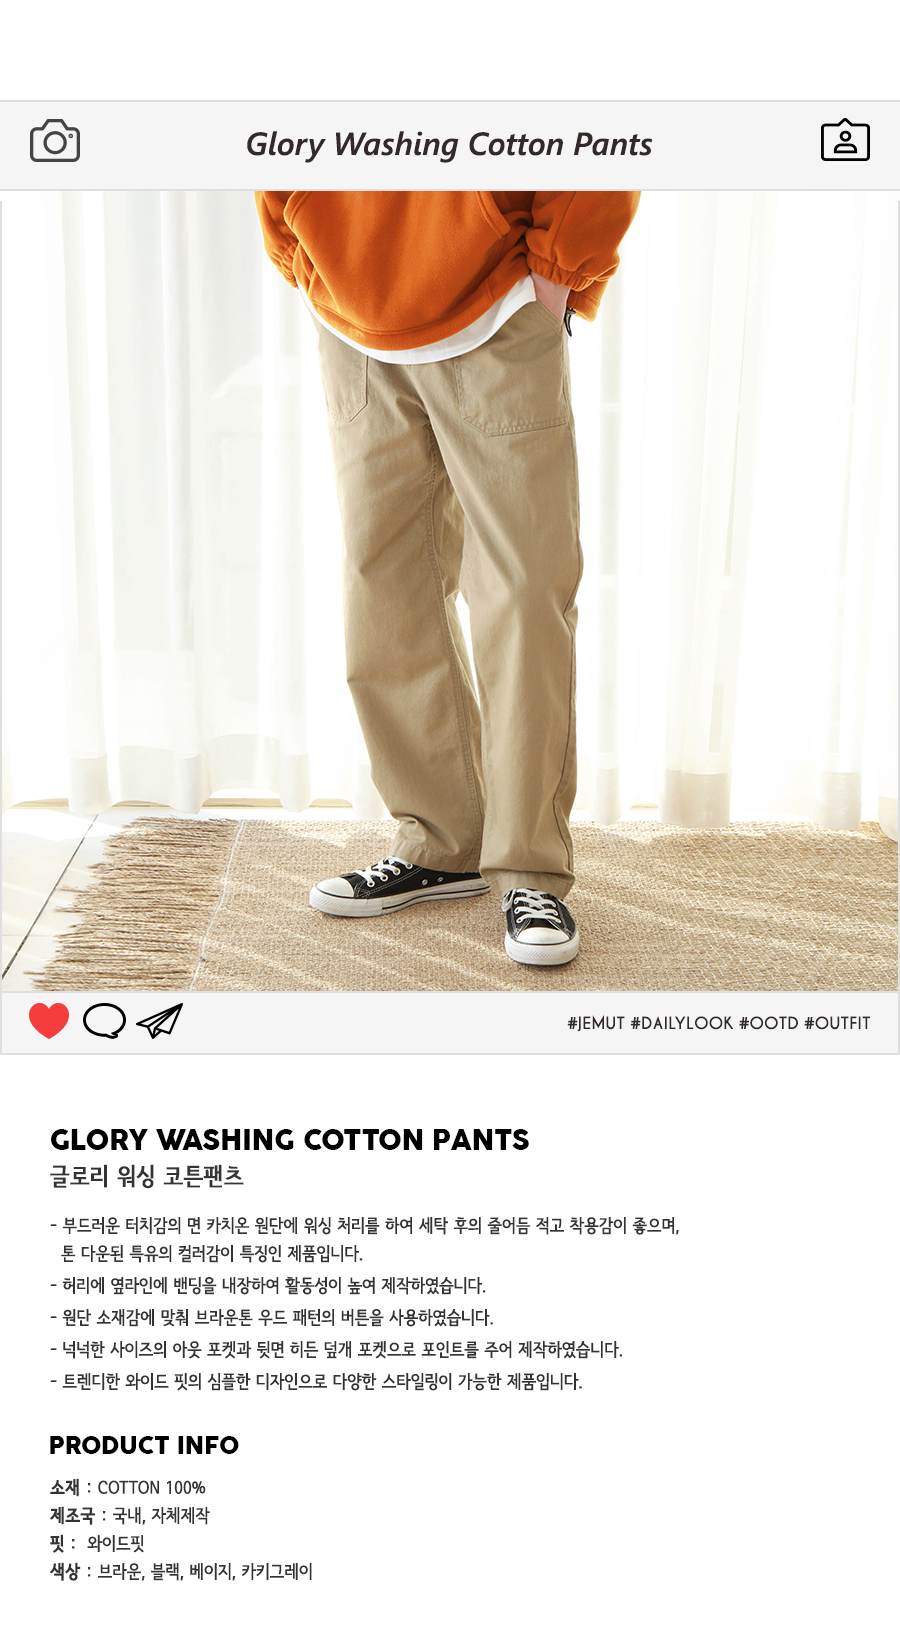 20190207_glory_cotton_pants_title_kj.jpg